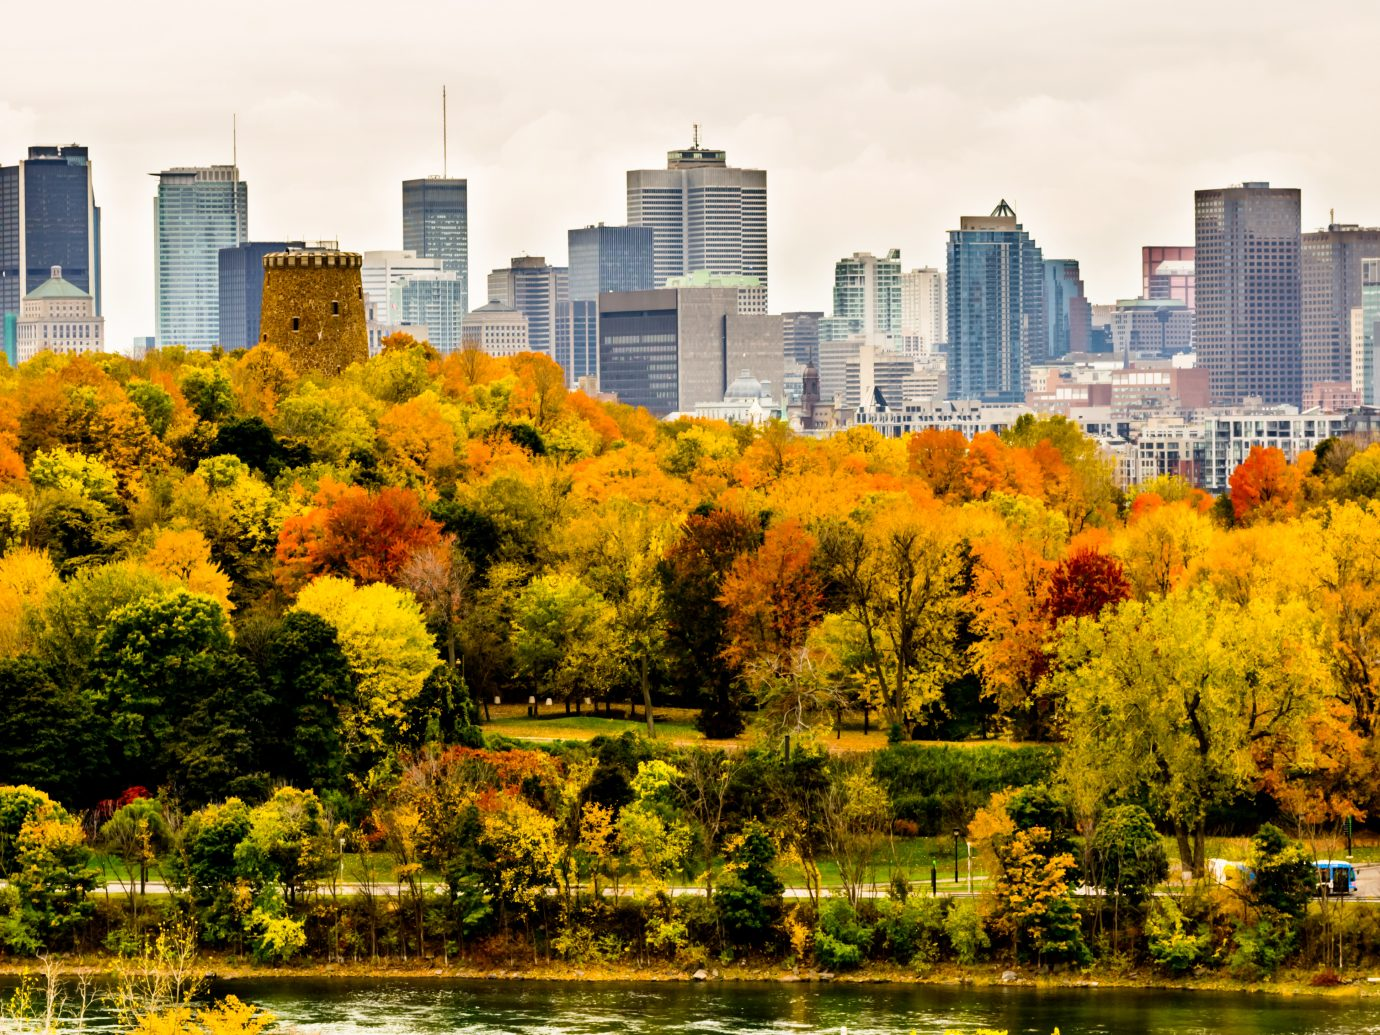 Montreal downtown skyscrapers in autumn